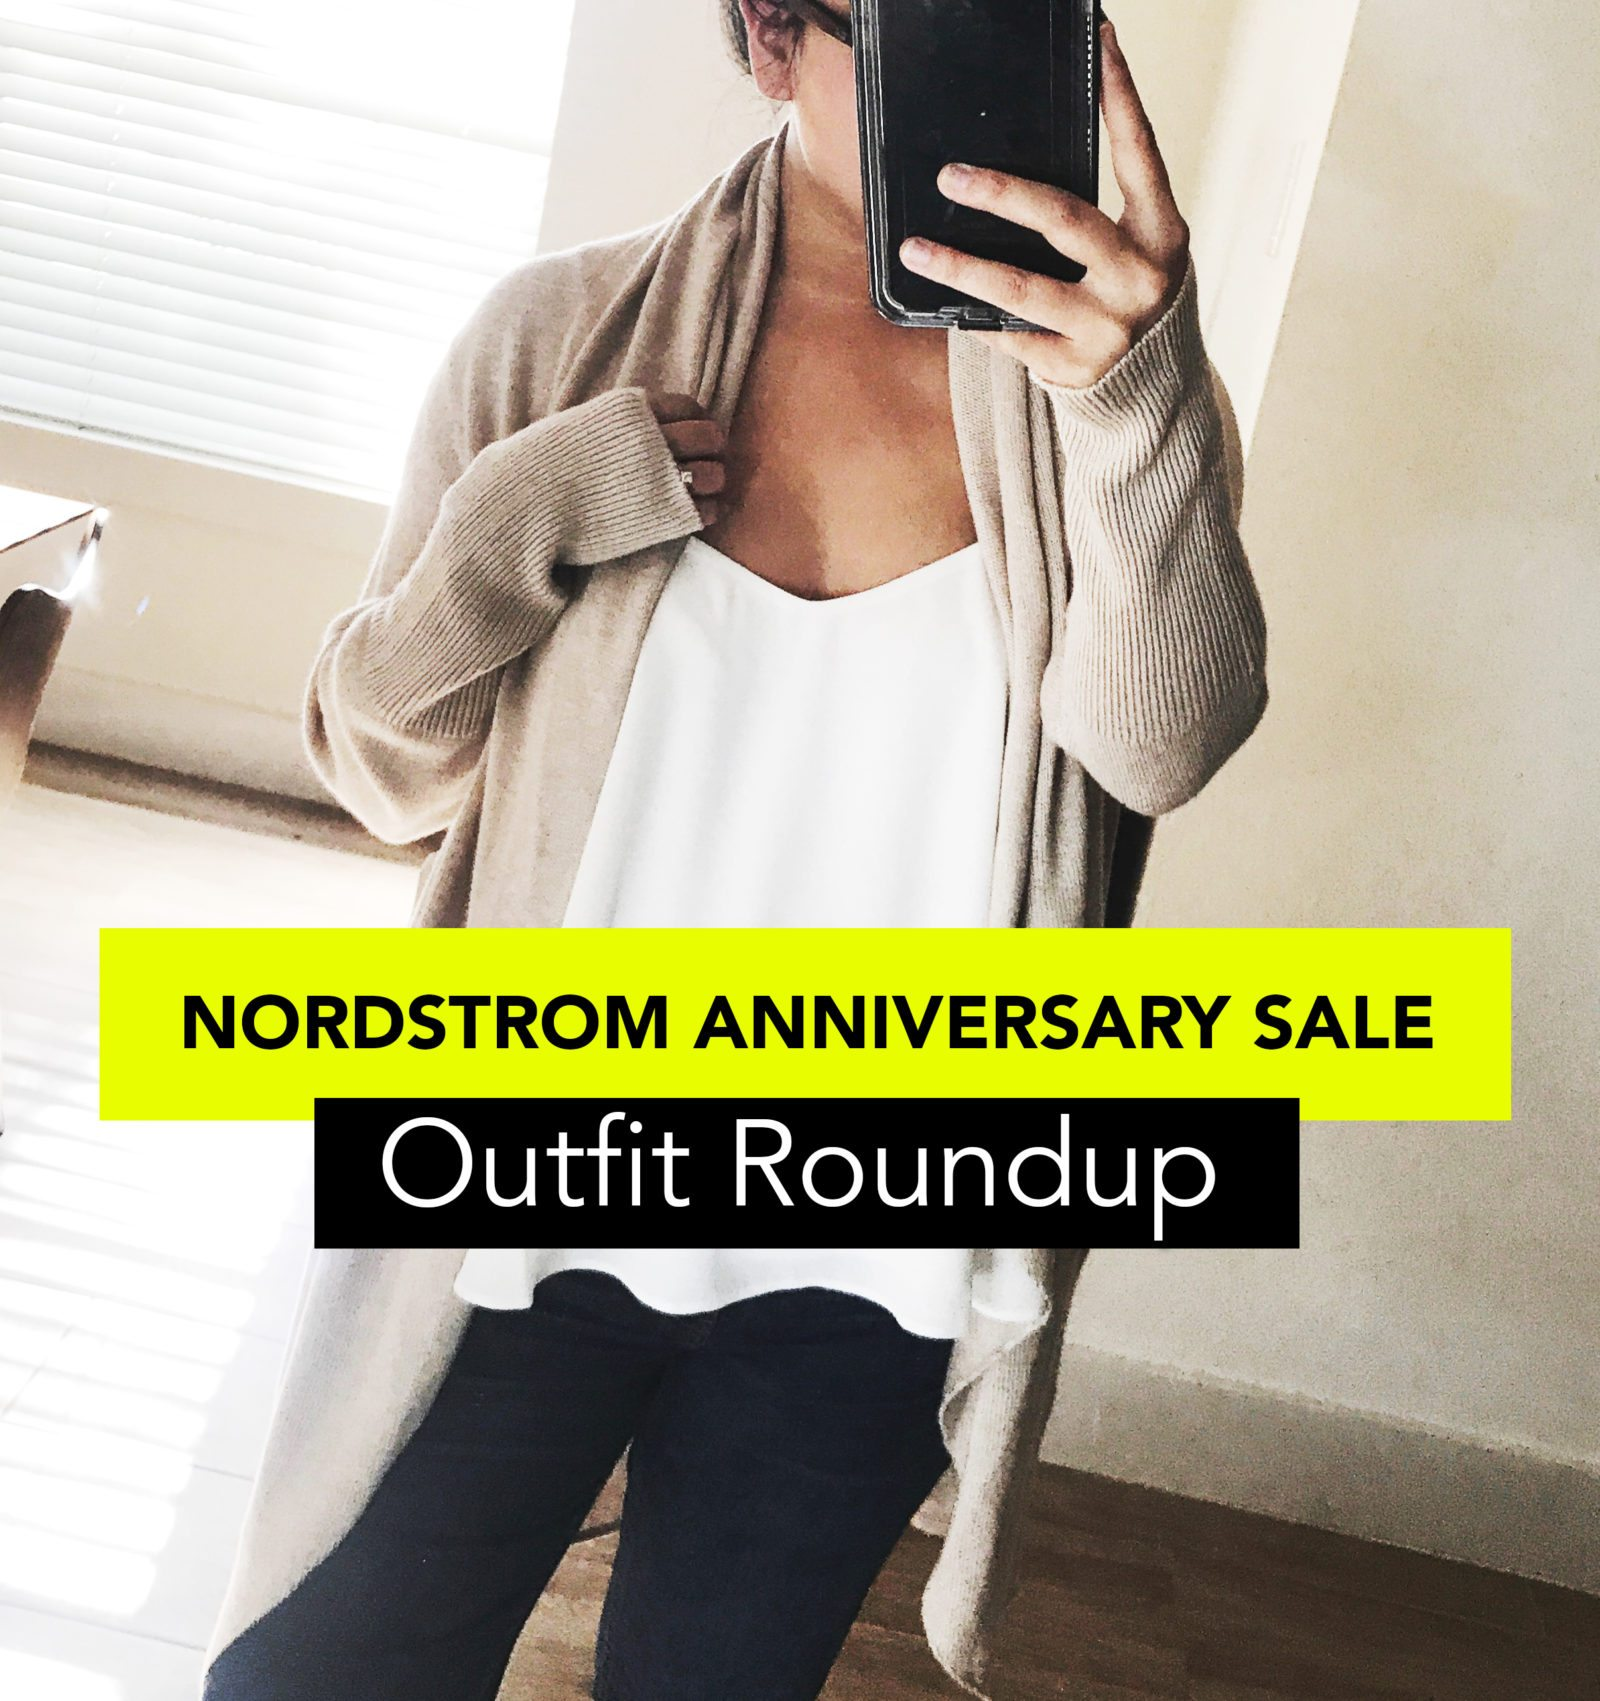 Nordstrom anniversary sale outfit roundup